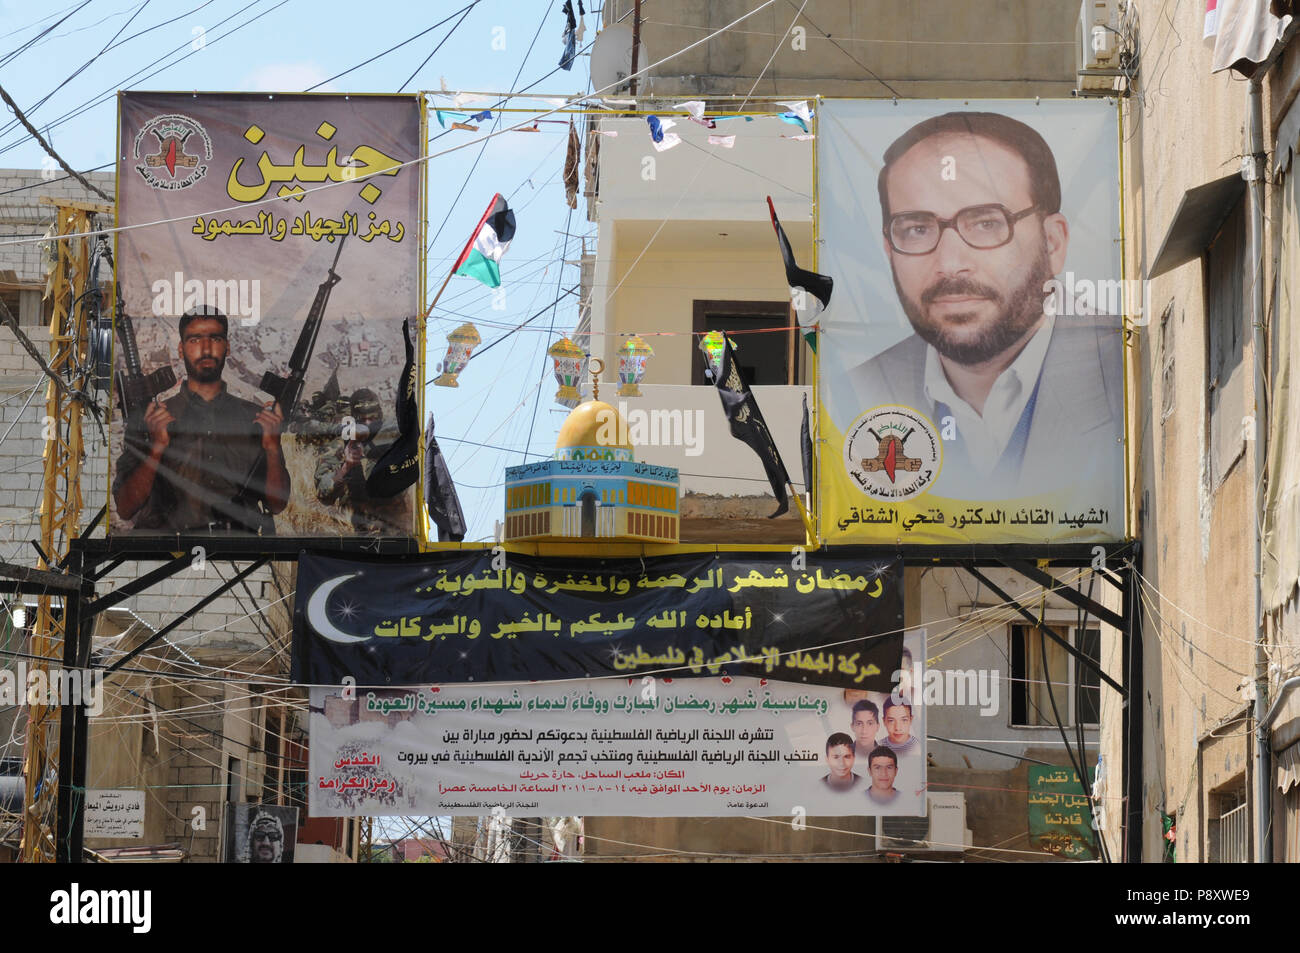 Lebanon:  Political and religios paroles on posters in the palestinian refugie camp Schatila in Beirut. - Stock Image